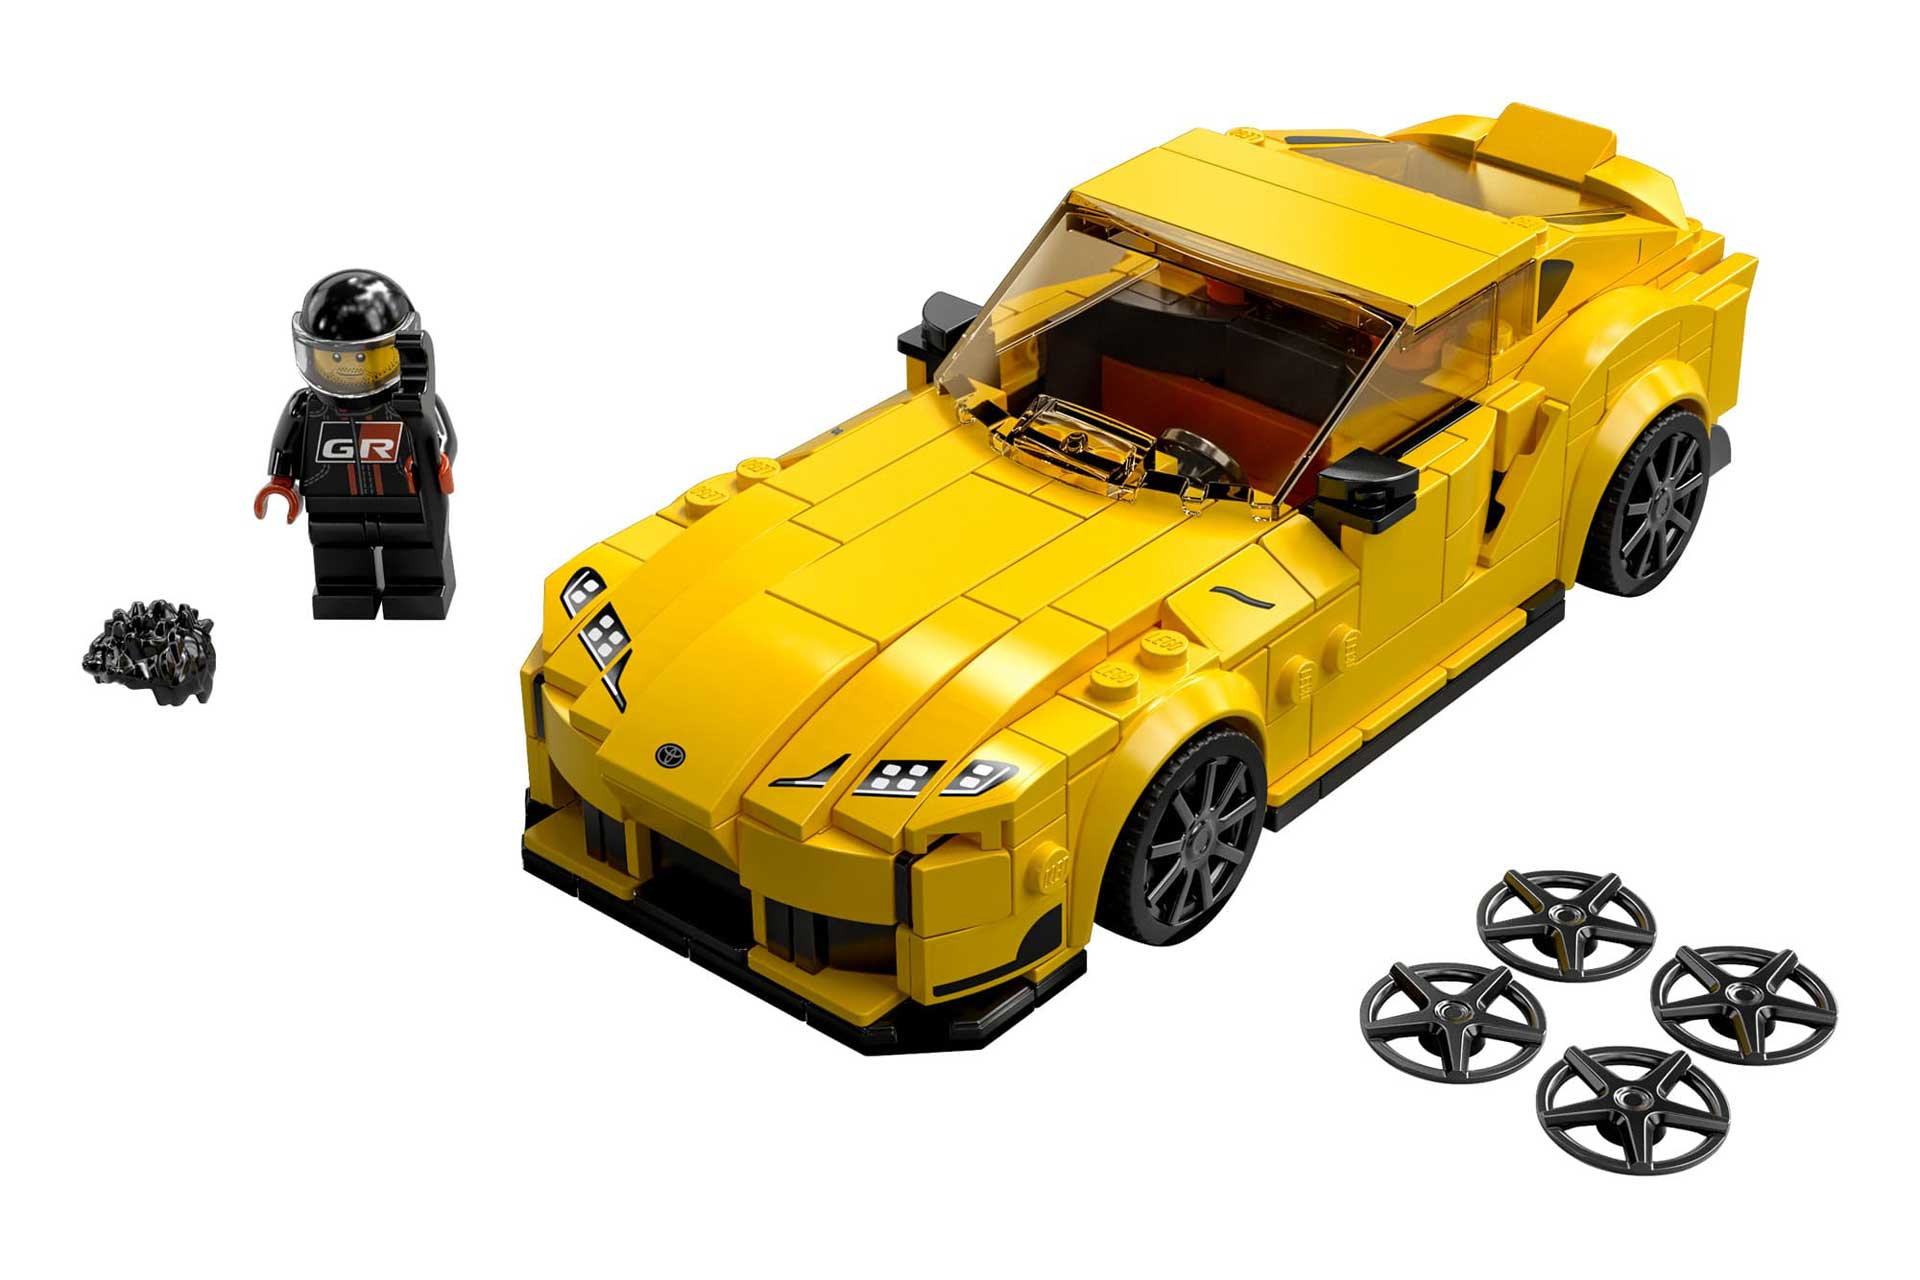 LEGO's new Speed Champions sets include Ford, Toyota, and Chevrolet 19